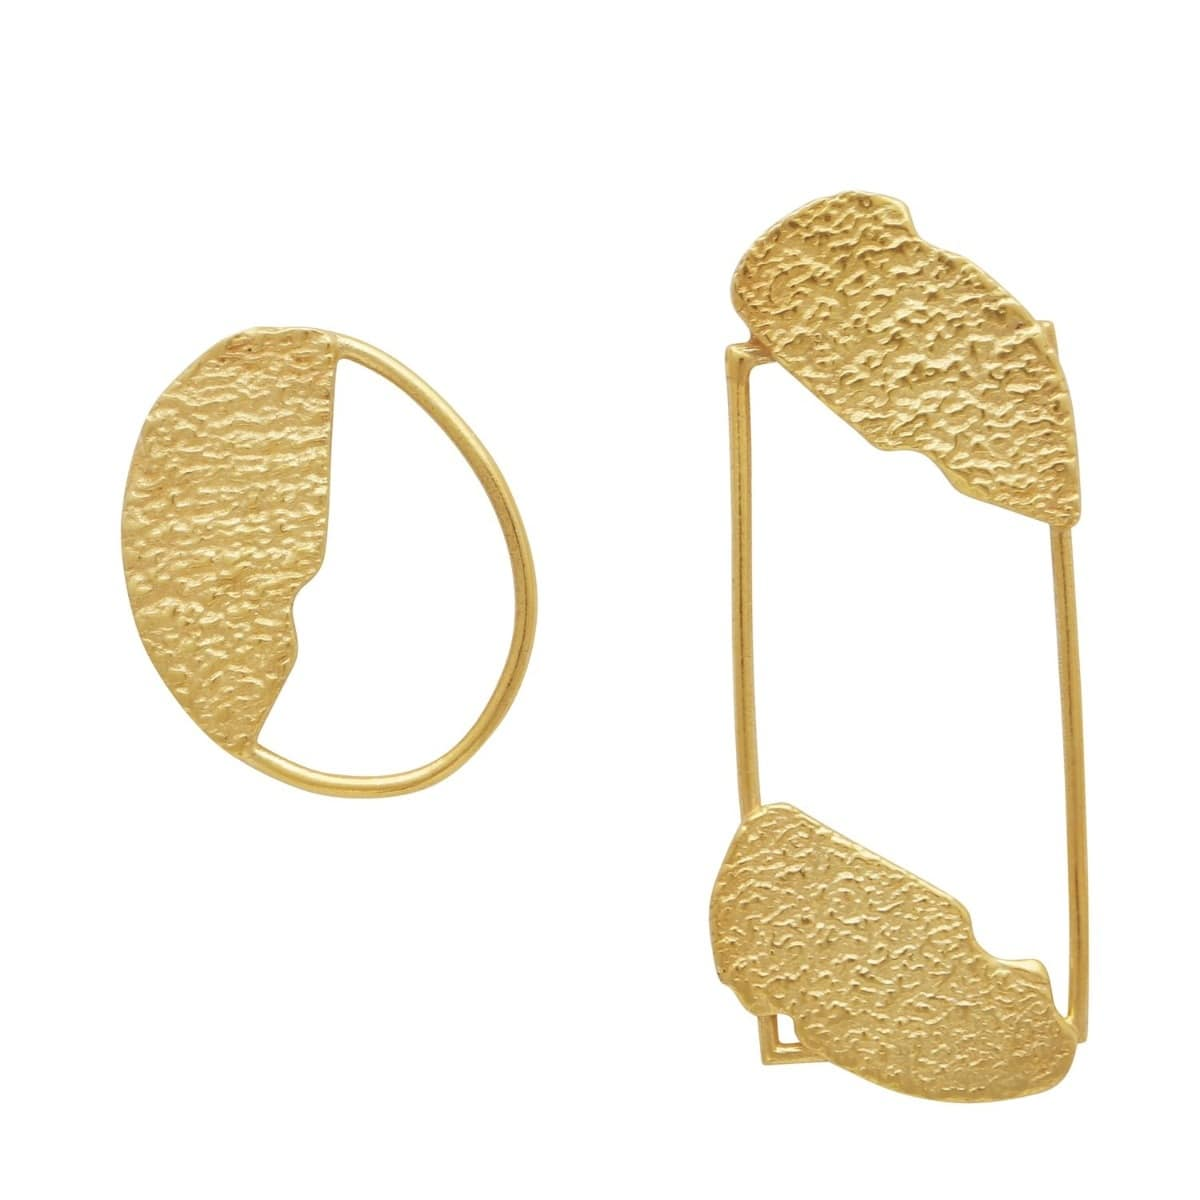 Shaped Hammered Uneven Mismatched Earrings